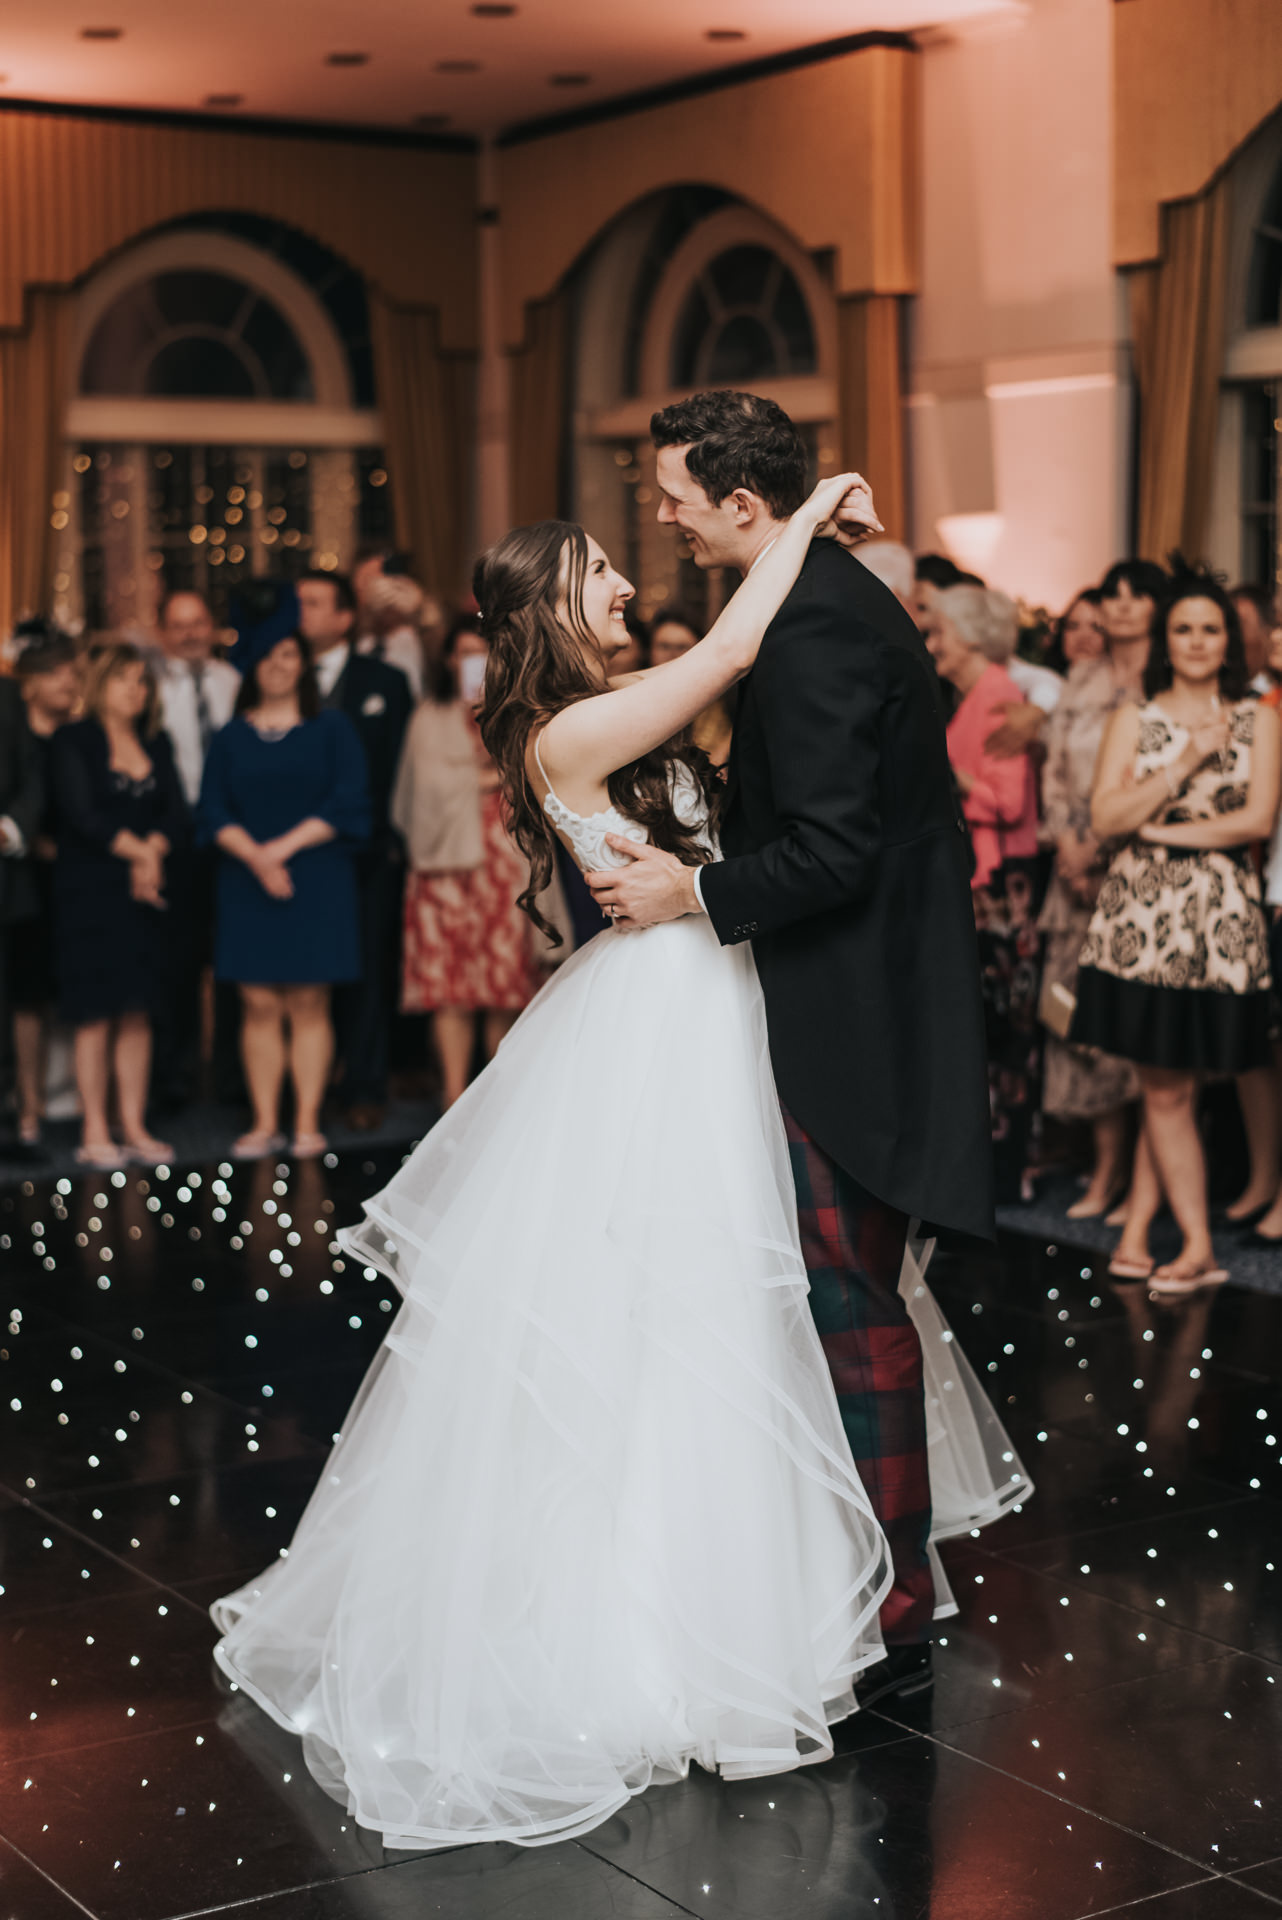 Balbirnie House wedding photos, weddings Balbirnie House, wedding photographer Edinburgh, wedding photographer Scotland, wedding photographer Glasgow, Karol Makula Photography, wedding photography Scotland, Scotland wedding photographer